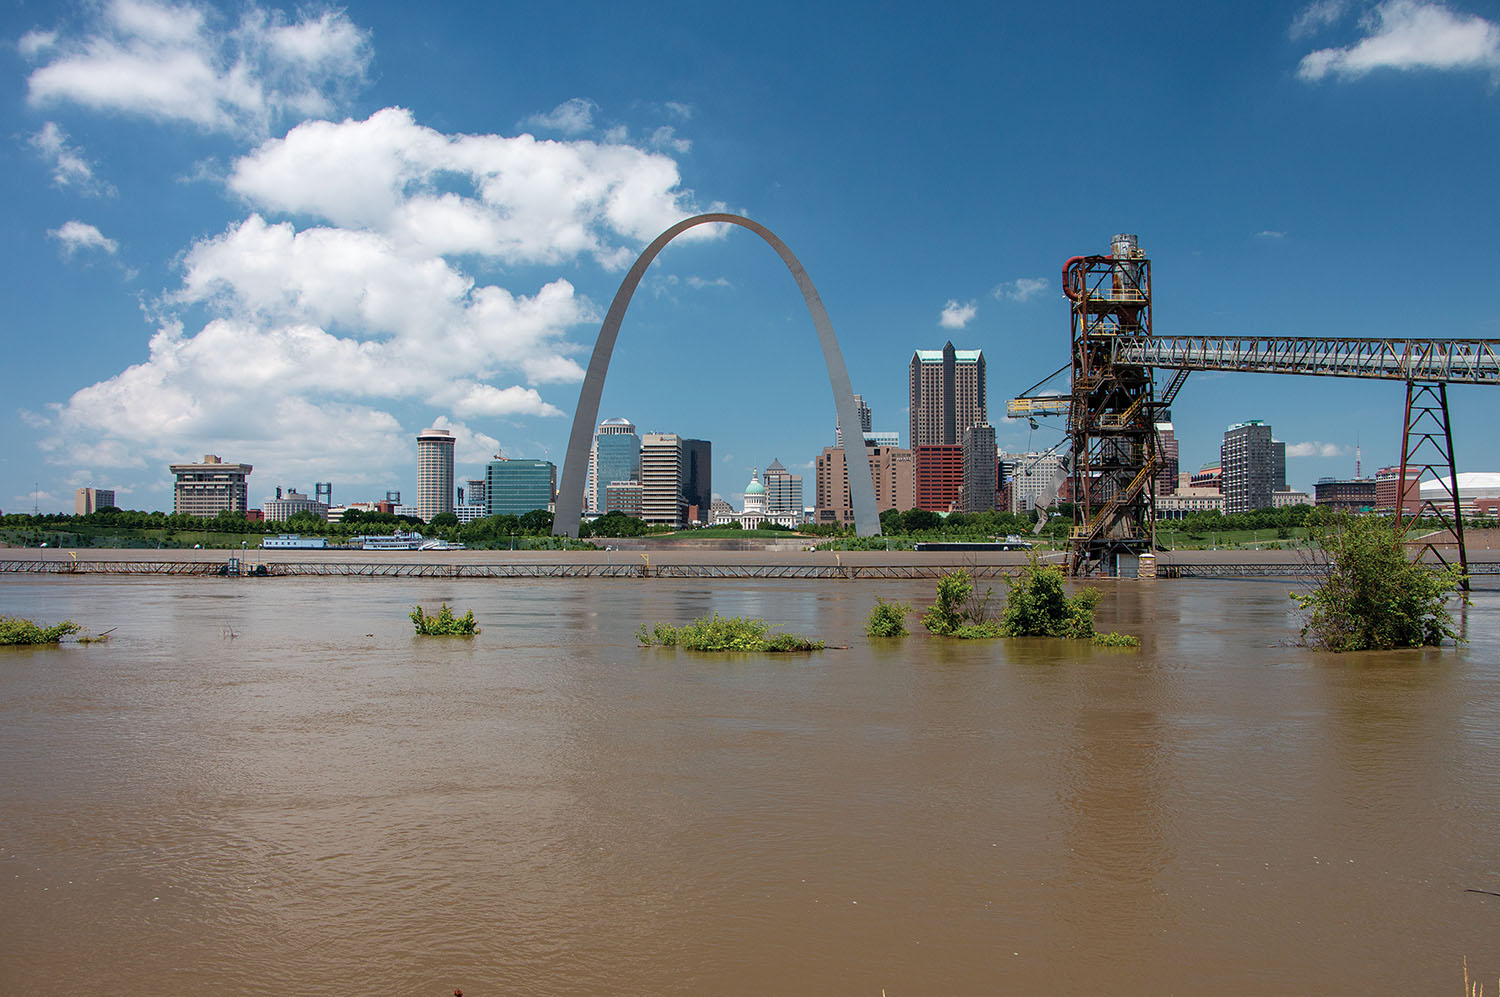 The flooded Mississippi River at St. Louis on June 5. (Photo by John Shoulberg)